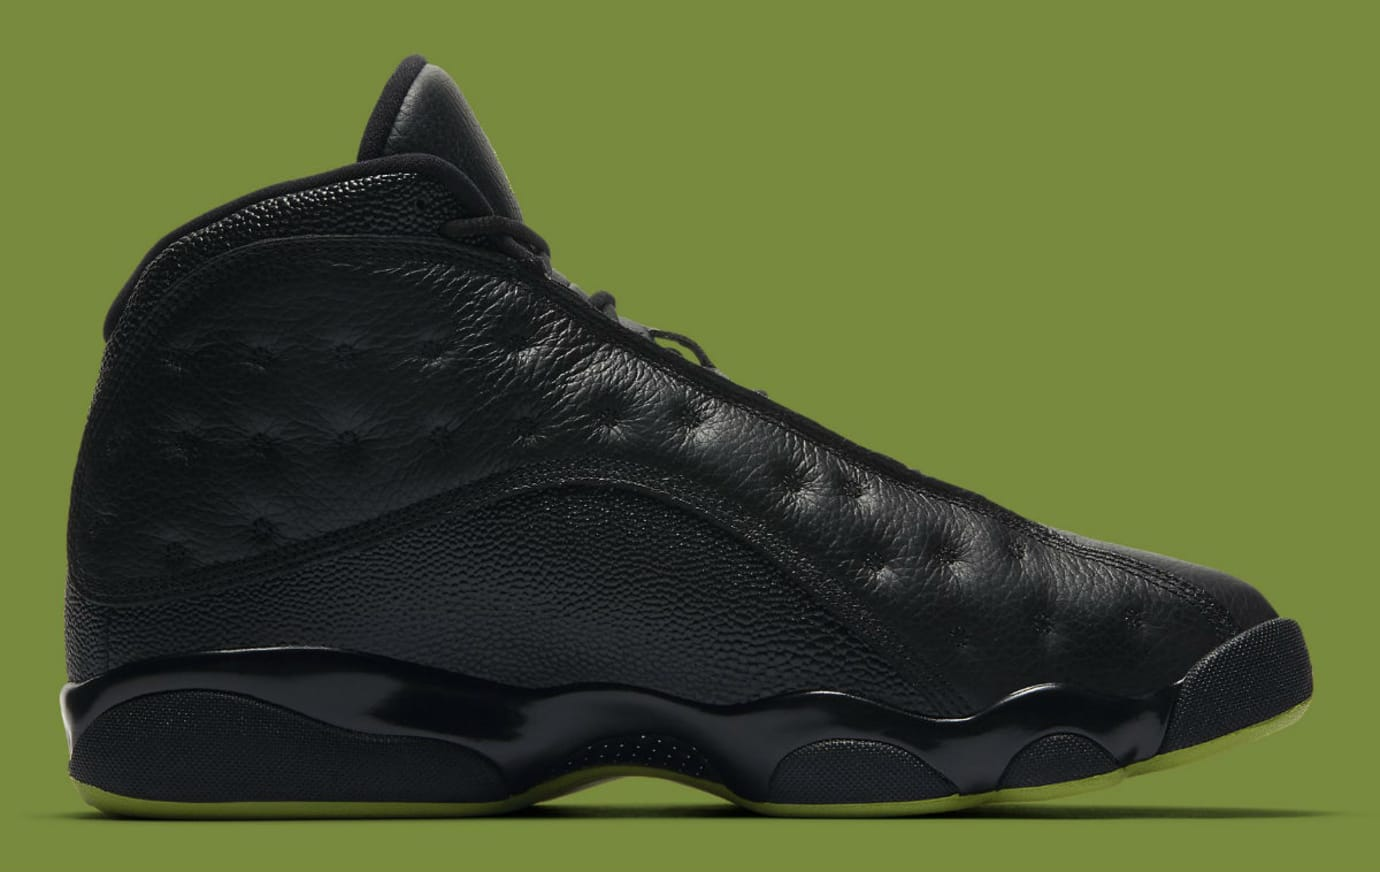 huge selection of 3864a 5ca88 Air Jordan 13 Altitude Release Date 414571-042 Medial